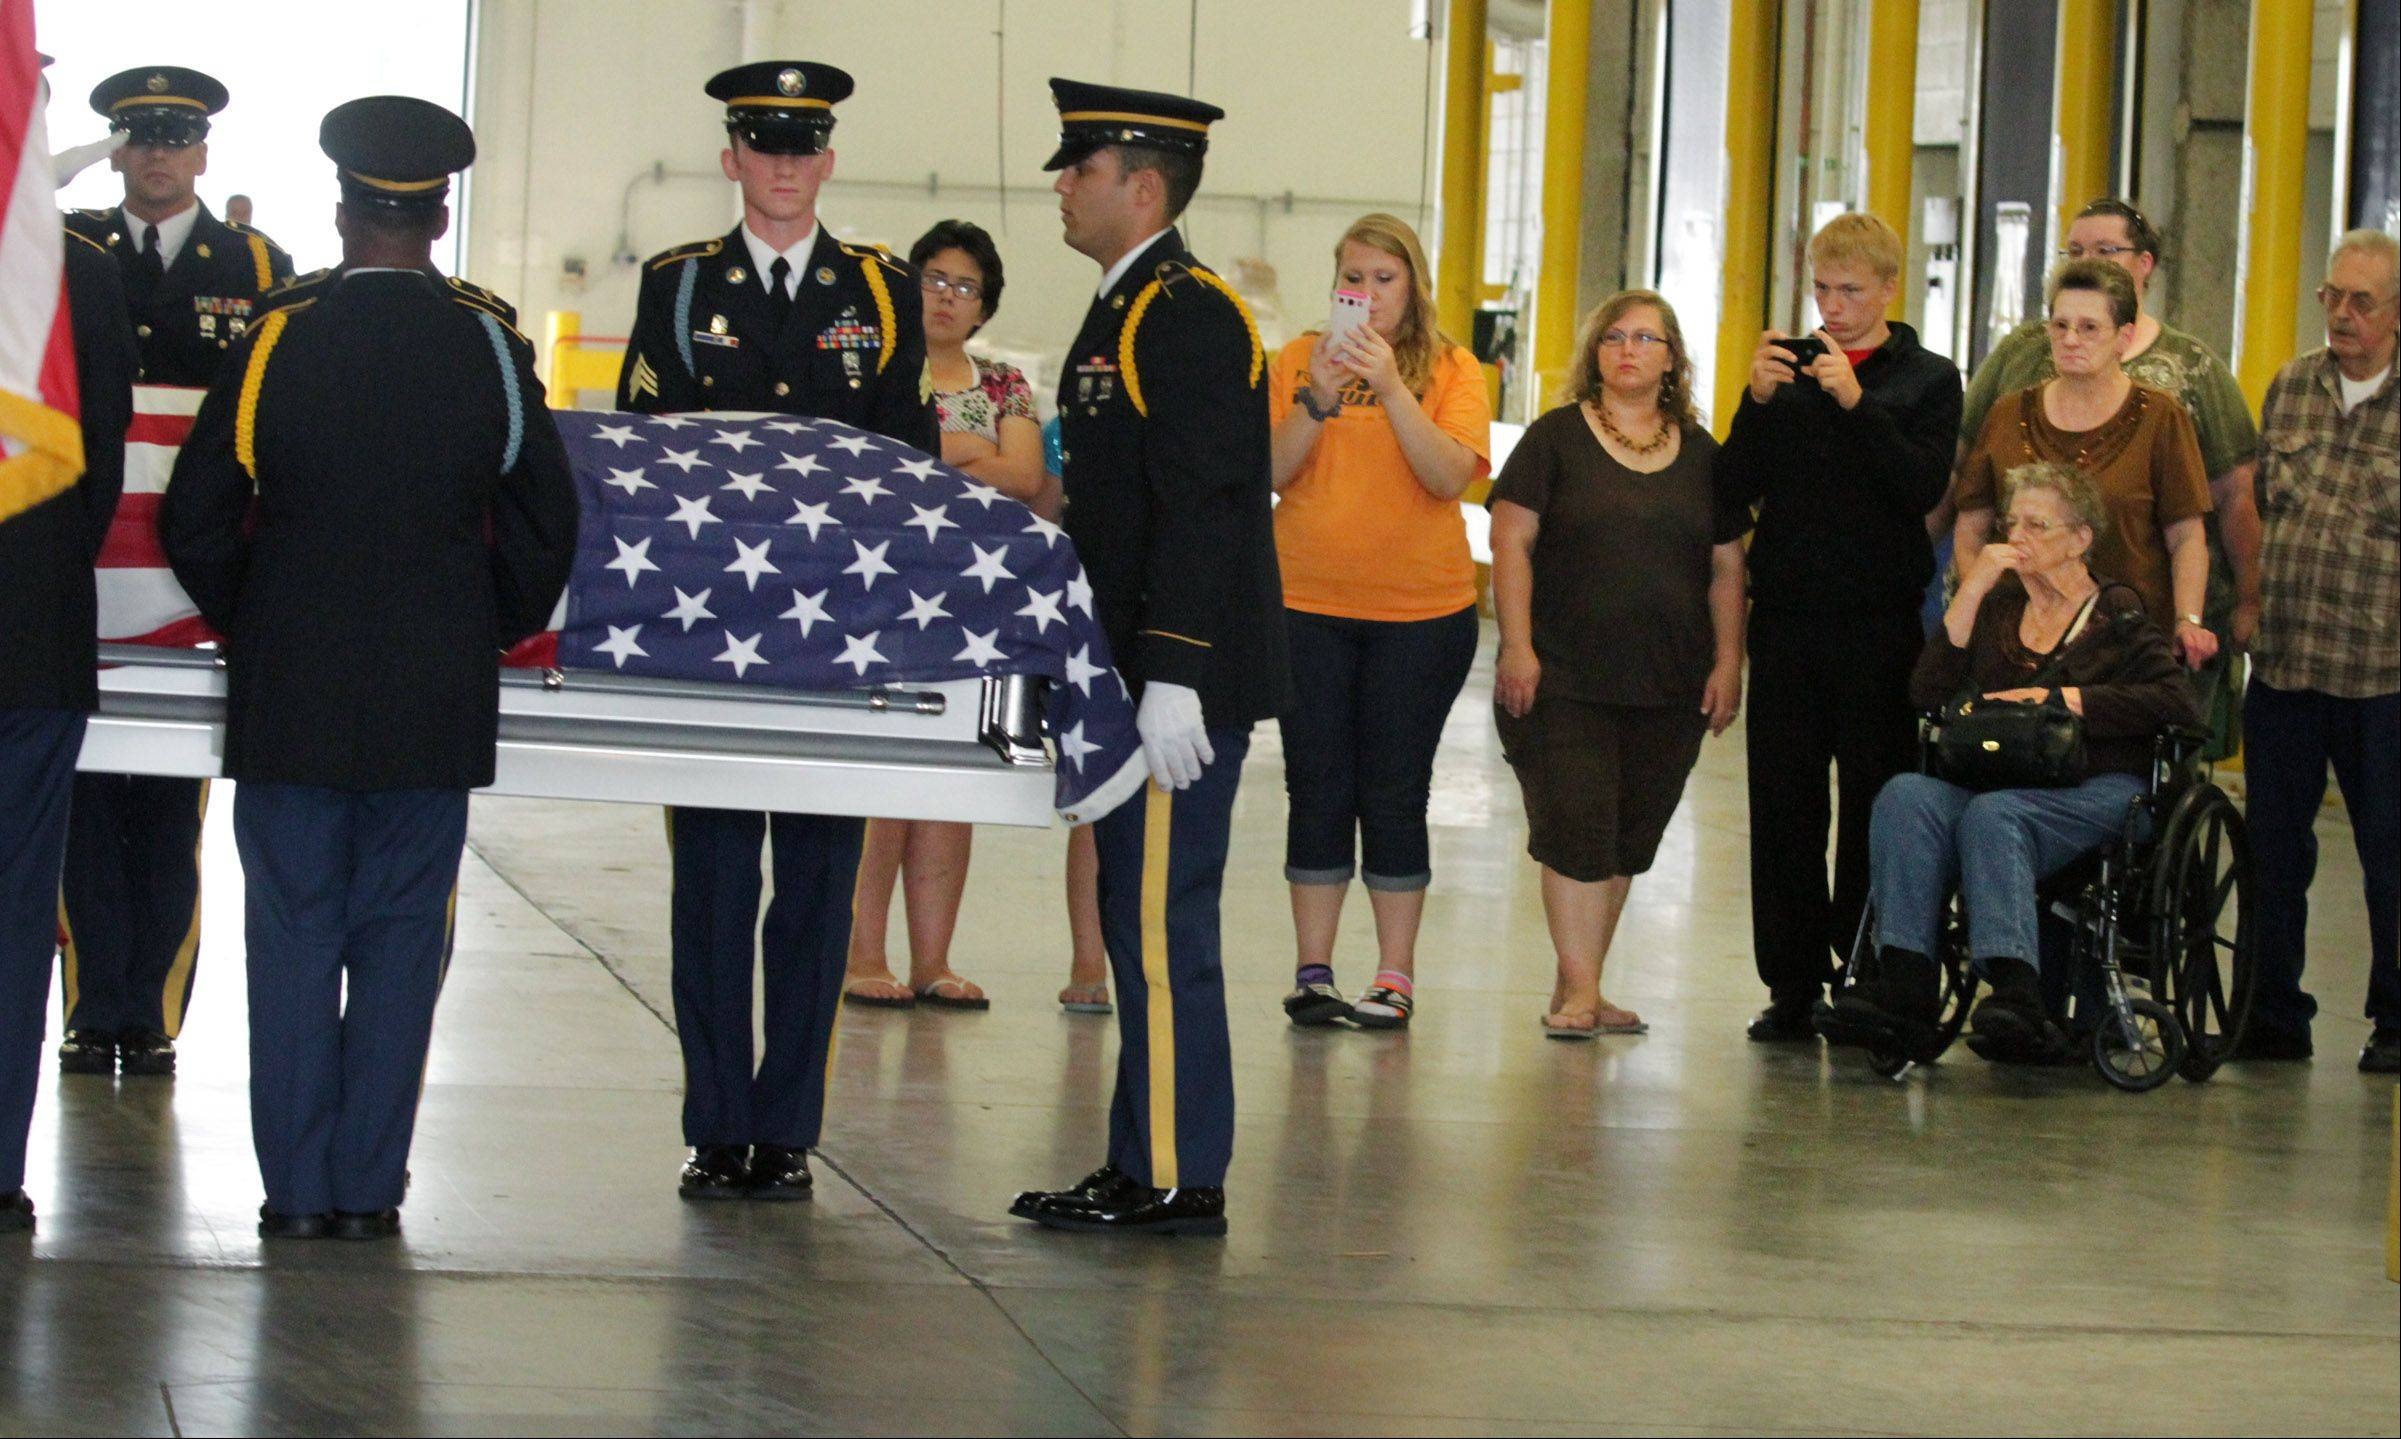 Donna Mitchell, 80, seated at right, and her daughter Donna Keefer behind her, watch as the coffin of Mitchell's twin brother, Army Cpl. Donald V. MacLean, is carried to a hearse by an Army honor guard Wednesday at O'Hare International Airport.